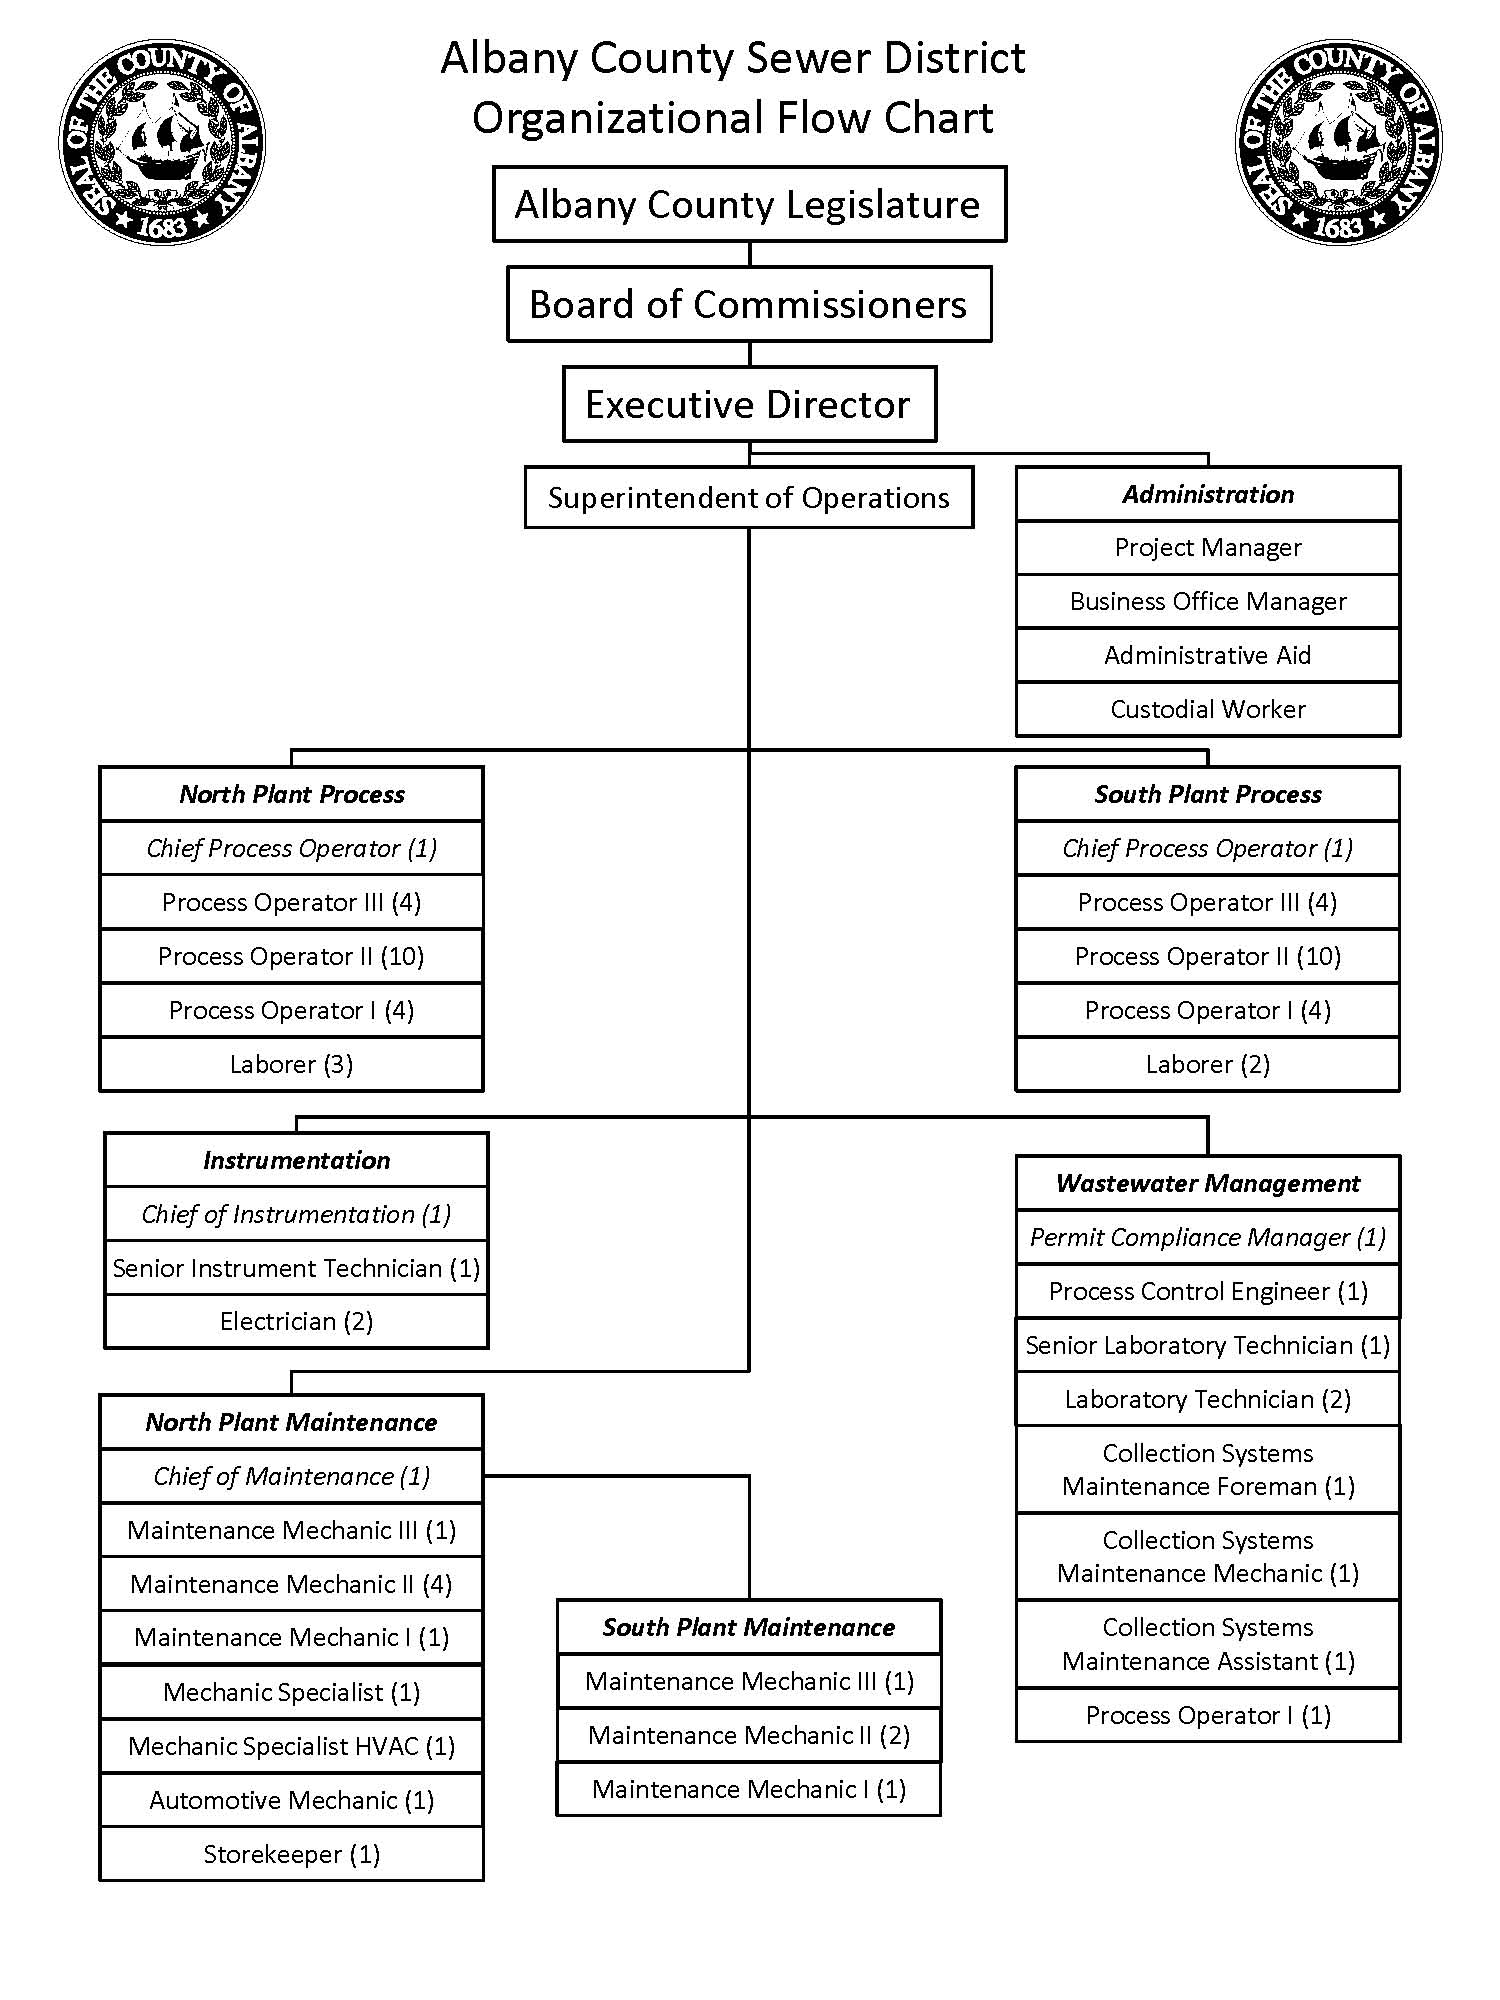 Albany County Sewer District Organizational Flow Chart